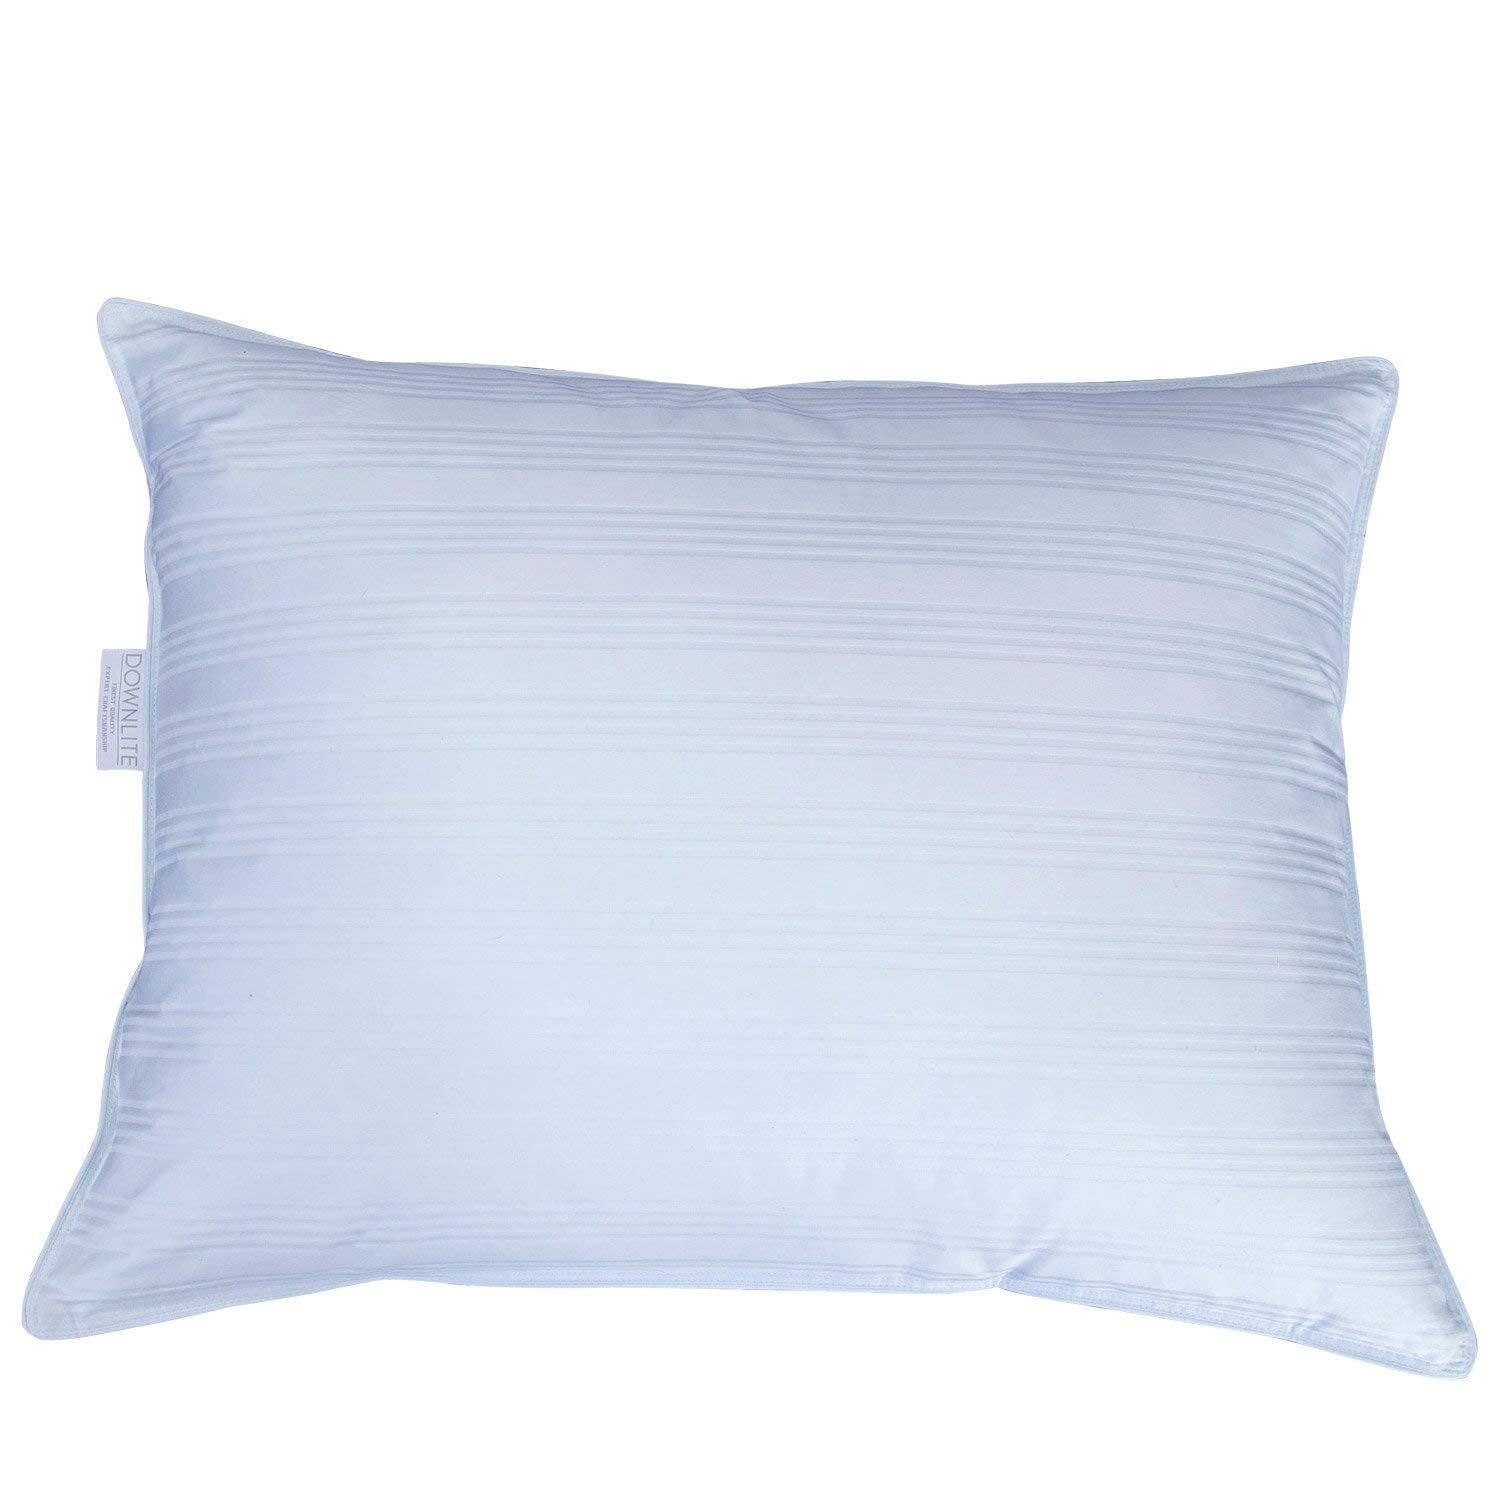 DOWNLITE Best Down Pillows Review by www.snoremagazine.com